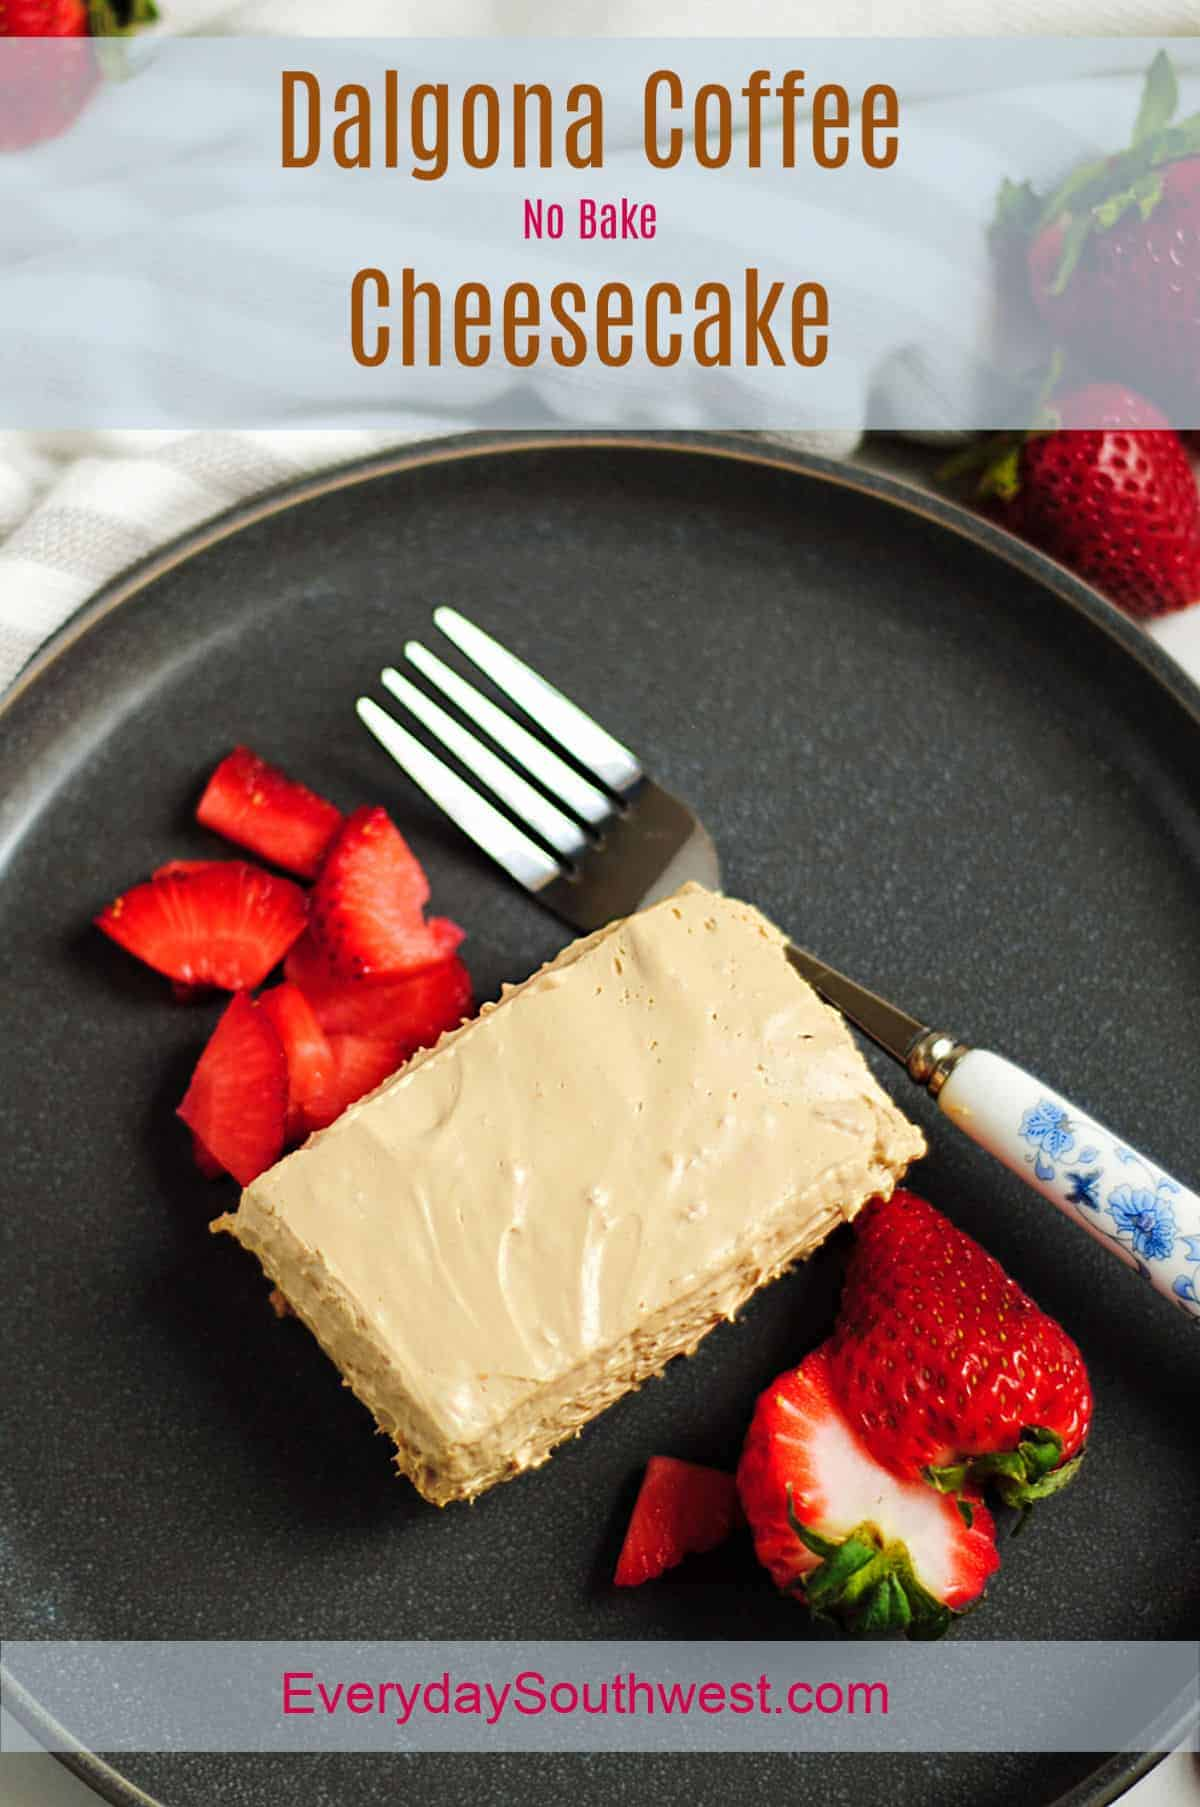 Dalgona Coffee Cheesecake Recipe